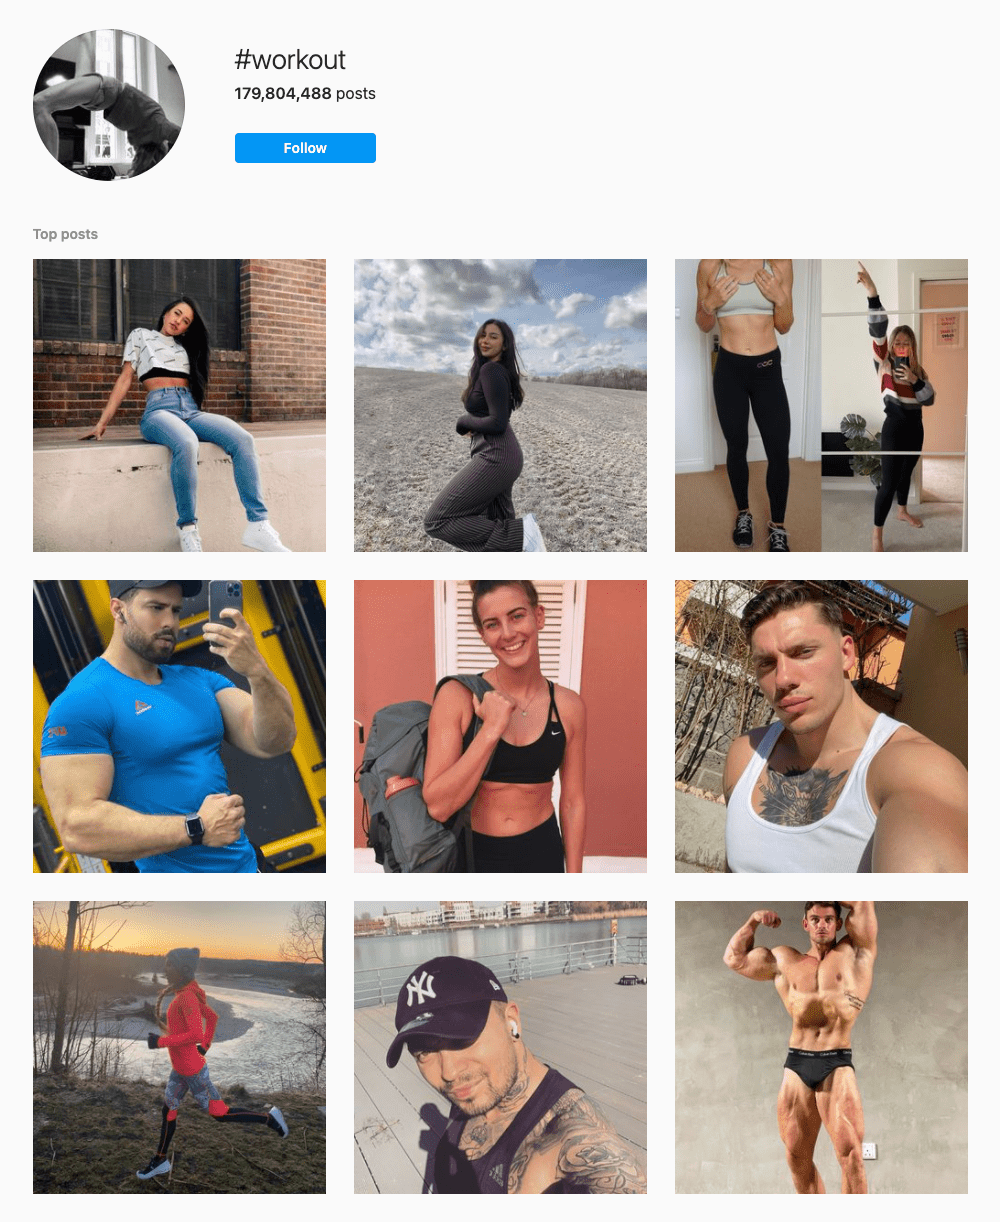 #workout Hashtags for Instagram